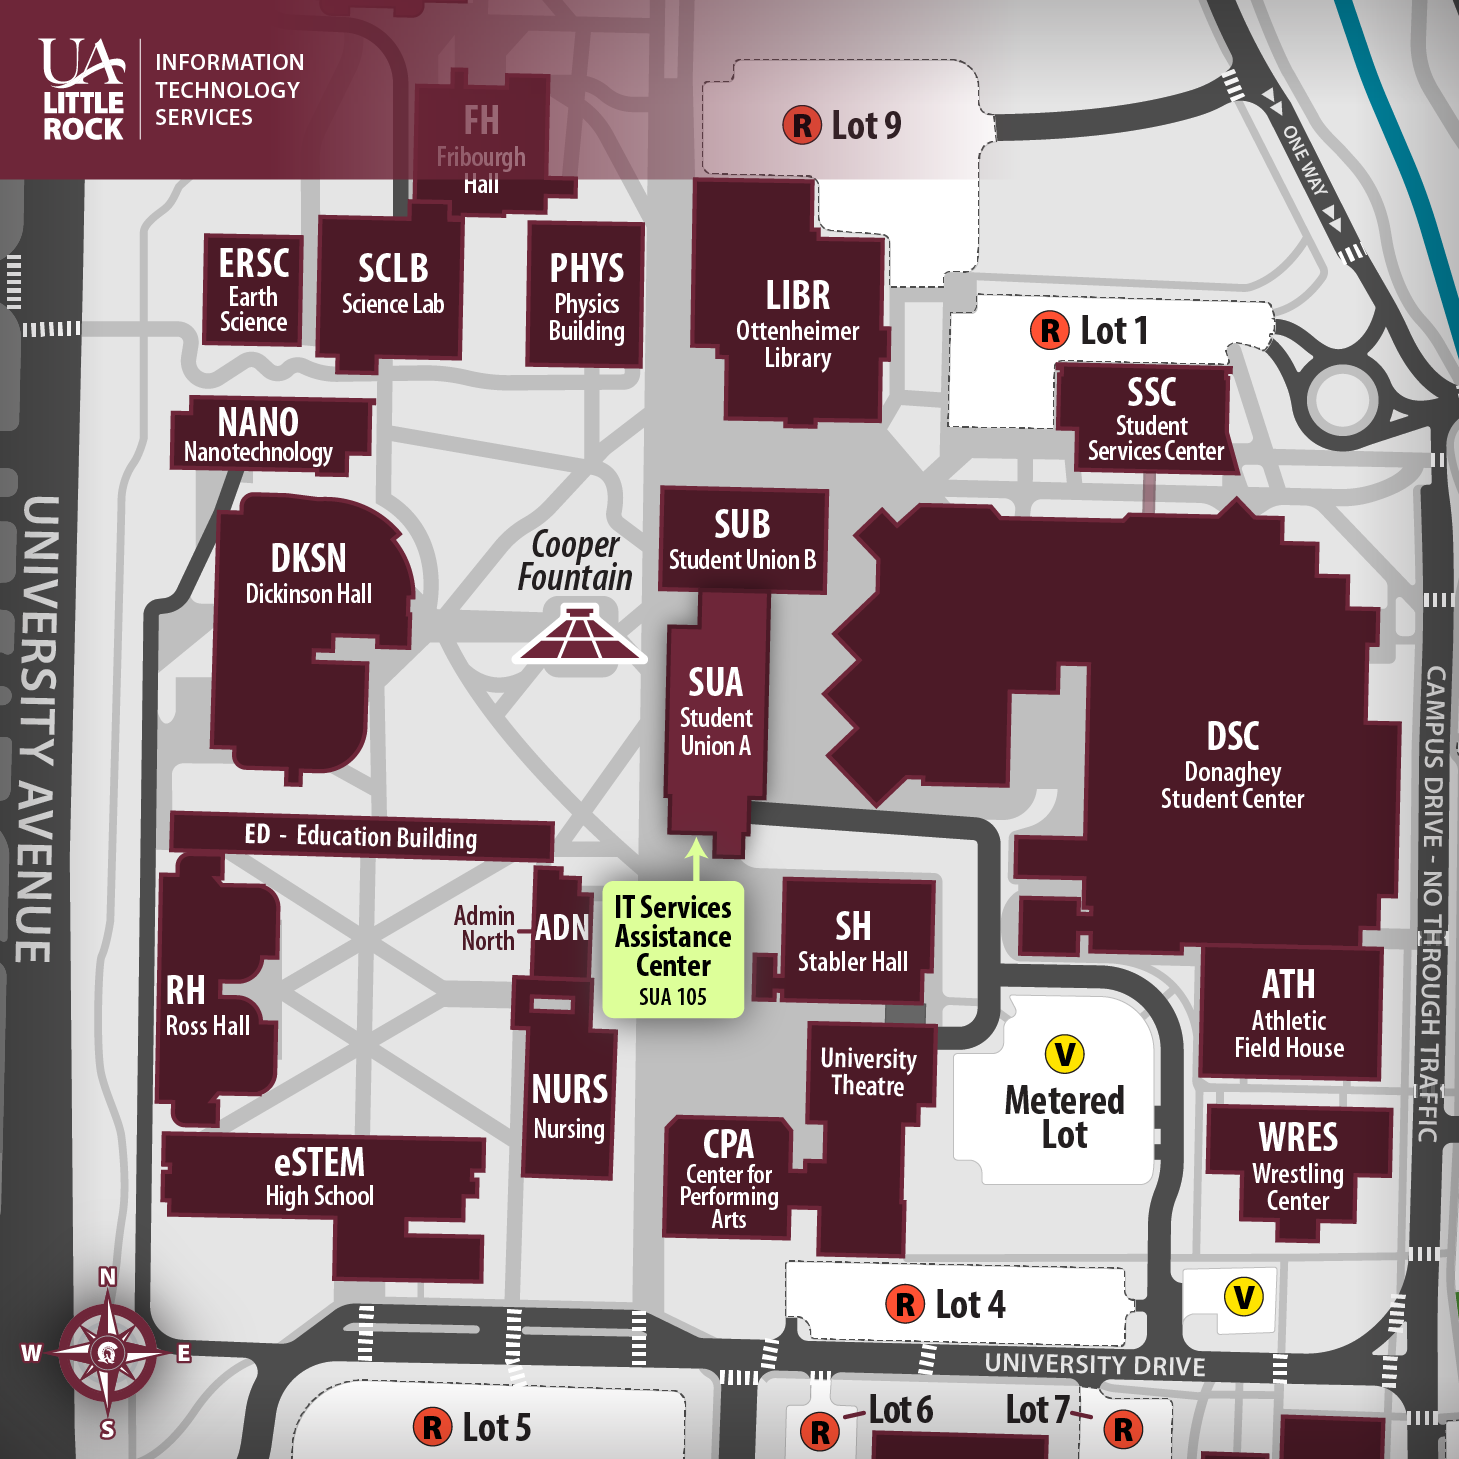 Map of the center of the UA Little Rock Campus, highlighting the location of IT Services Assistance Center in the Old Donaghey Student Union A (SUA), Room 105.